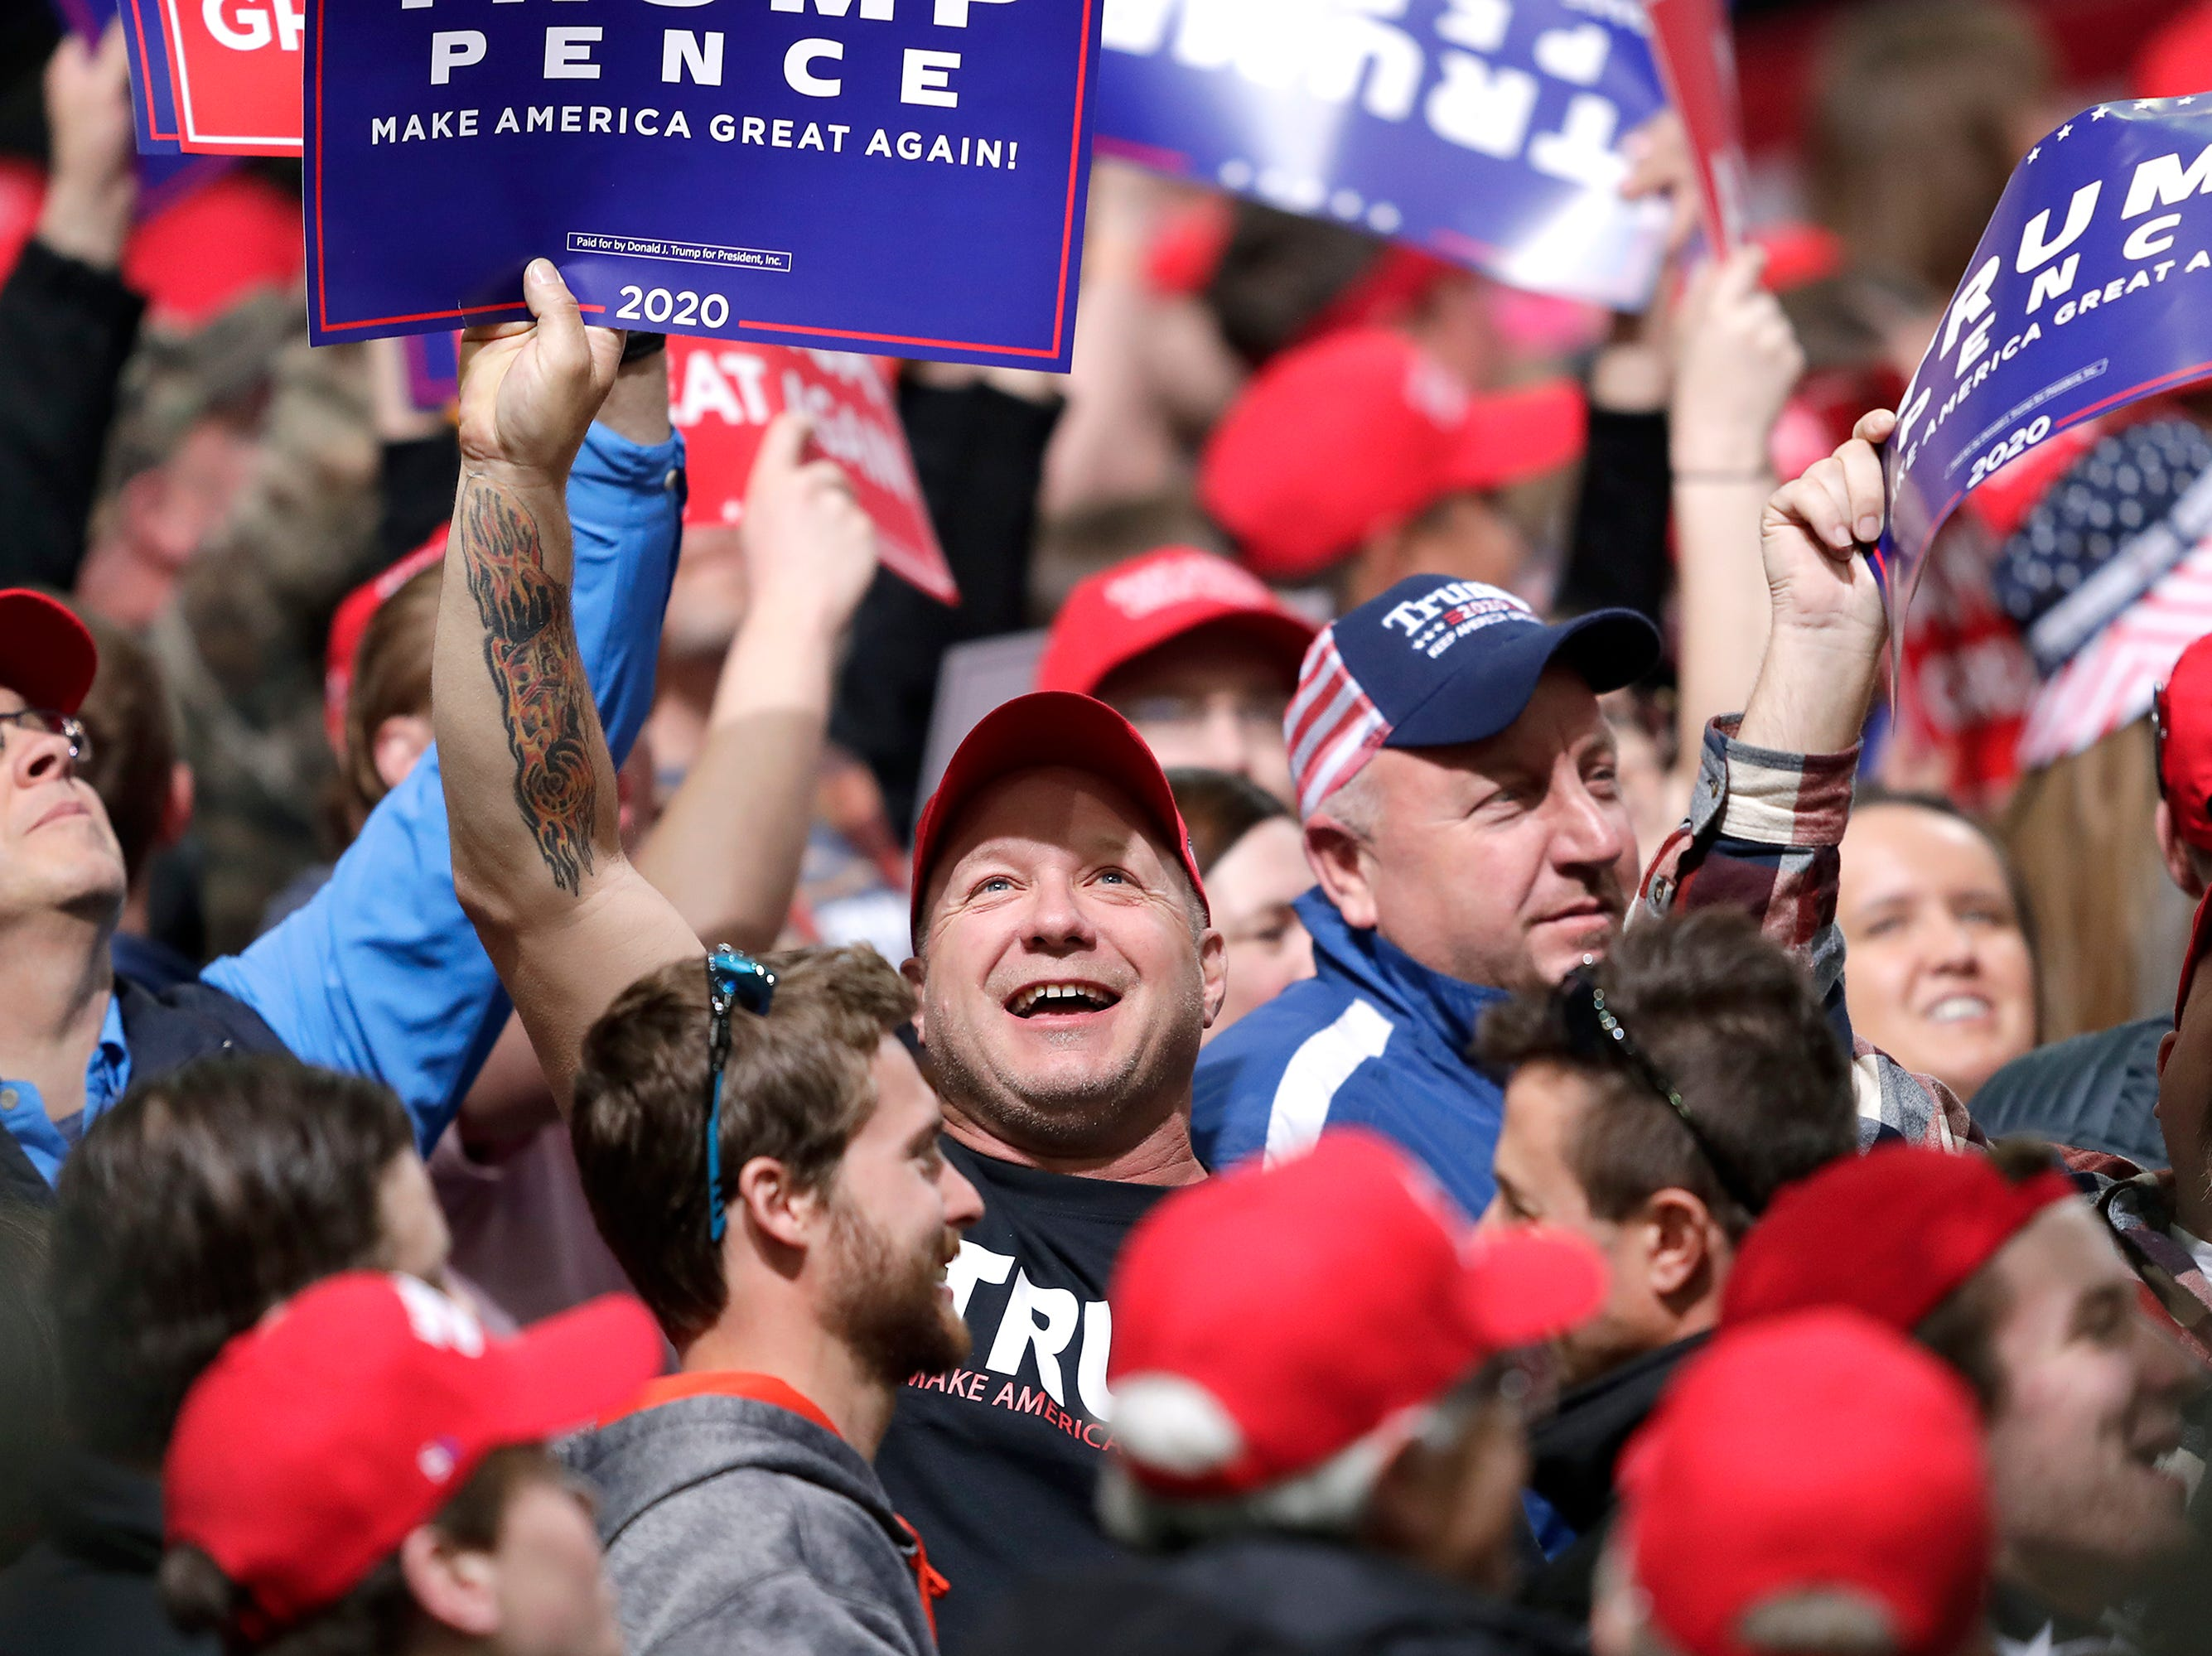 Supporters during a President Donald J. TrumpÕs Make America Great Again Rally on Saturday, April 27, 2019, at the Resch Center in Green Bay, Wis.